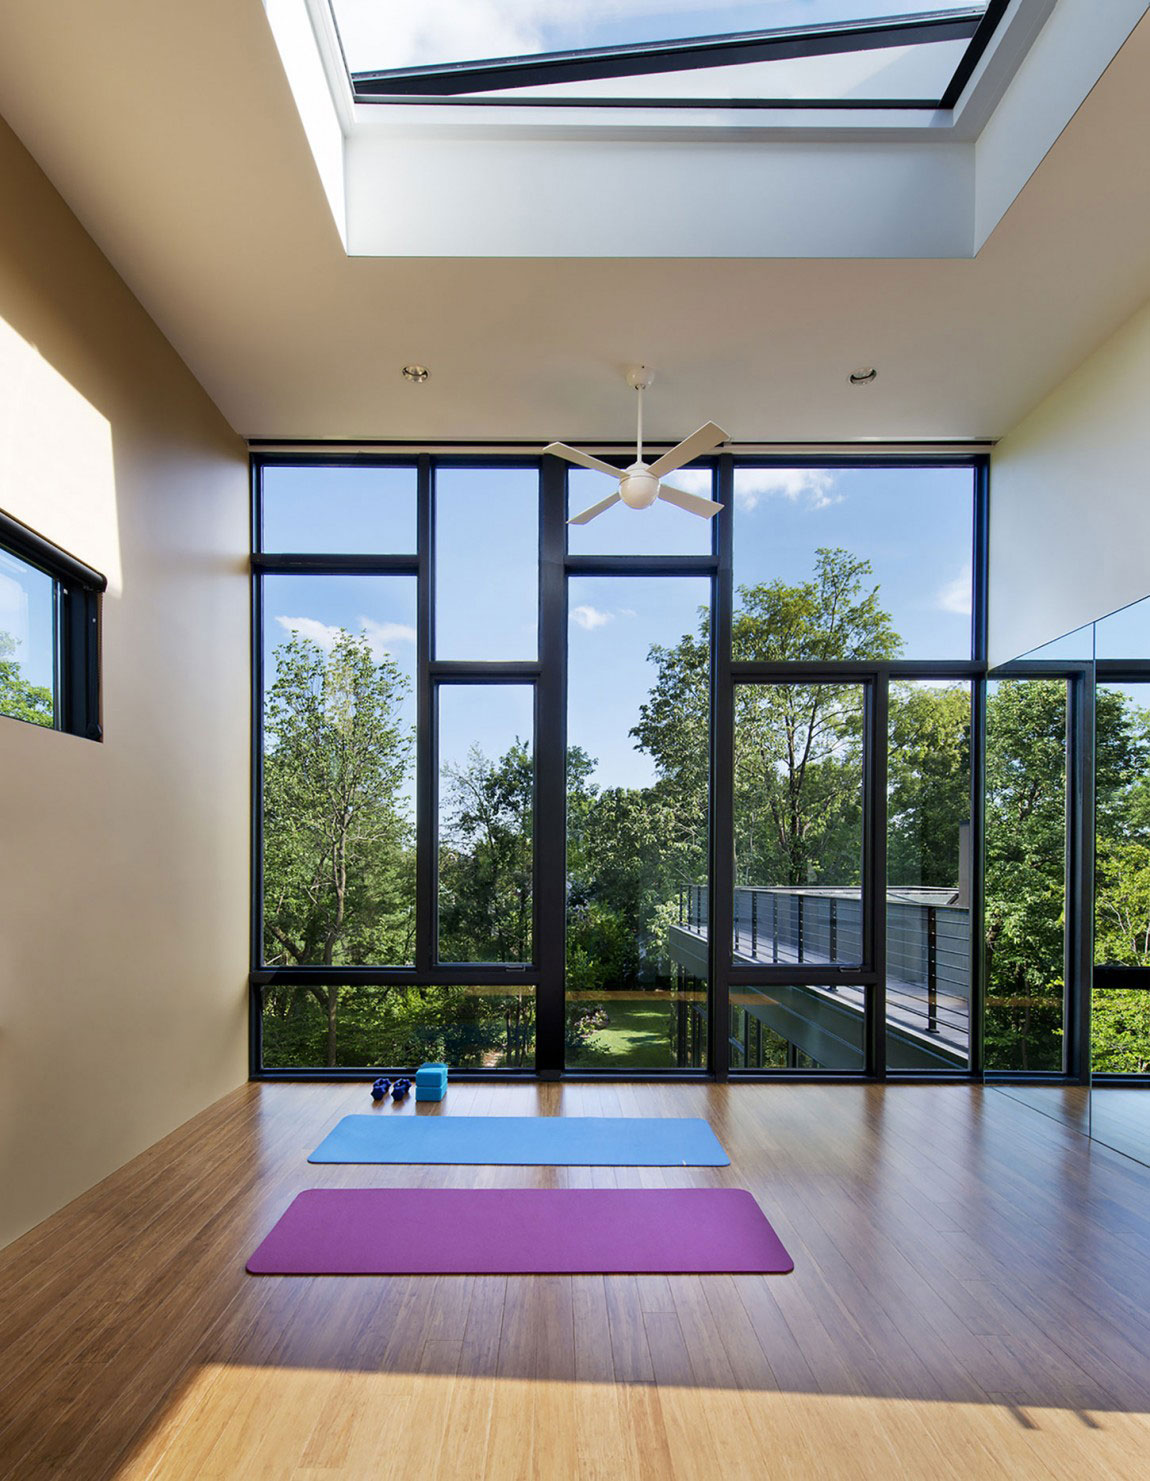 The Brandywine-house-is-an-interior-design-and-architecture-inspiration-16 The Brandywine house is an inspiration for interior design and architecture